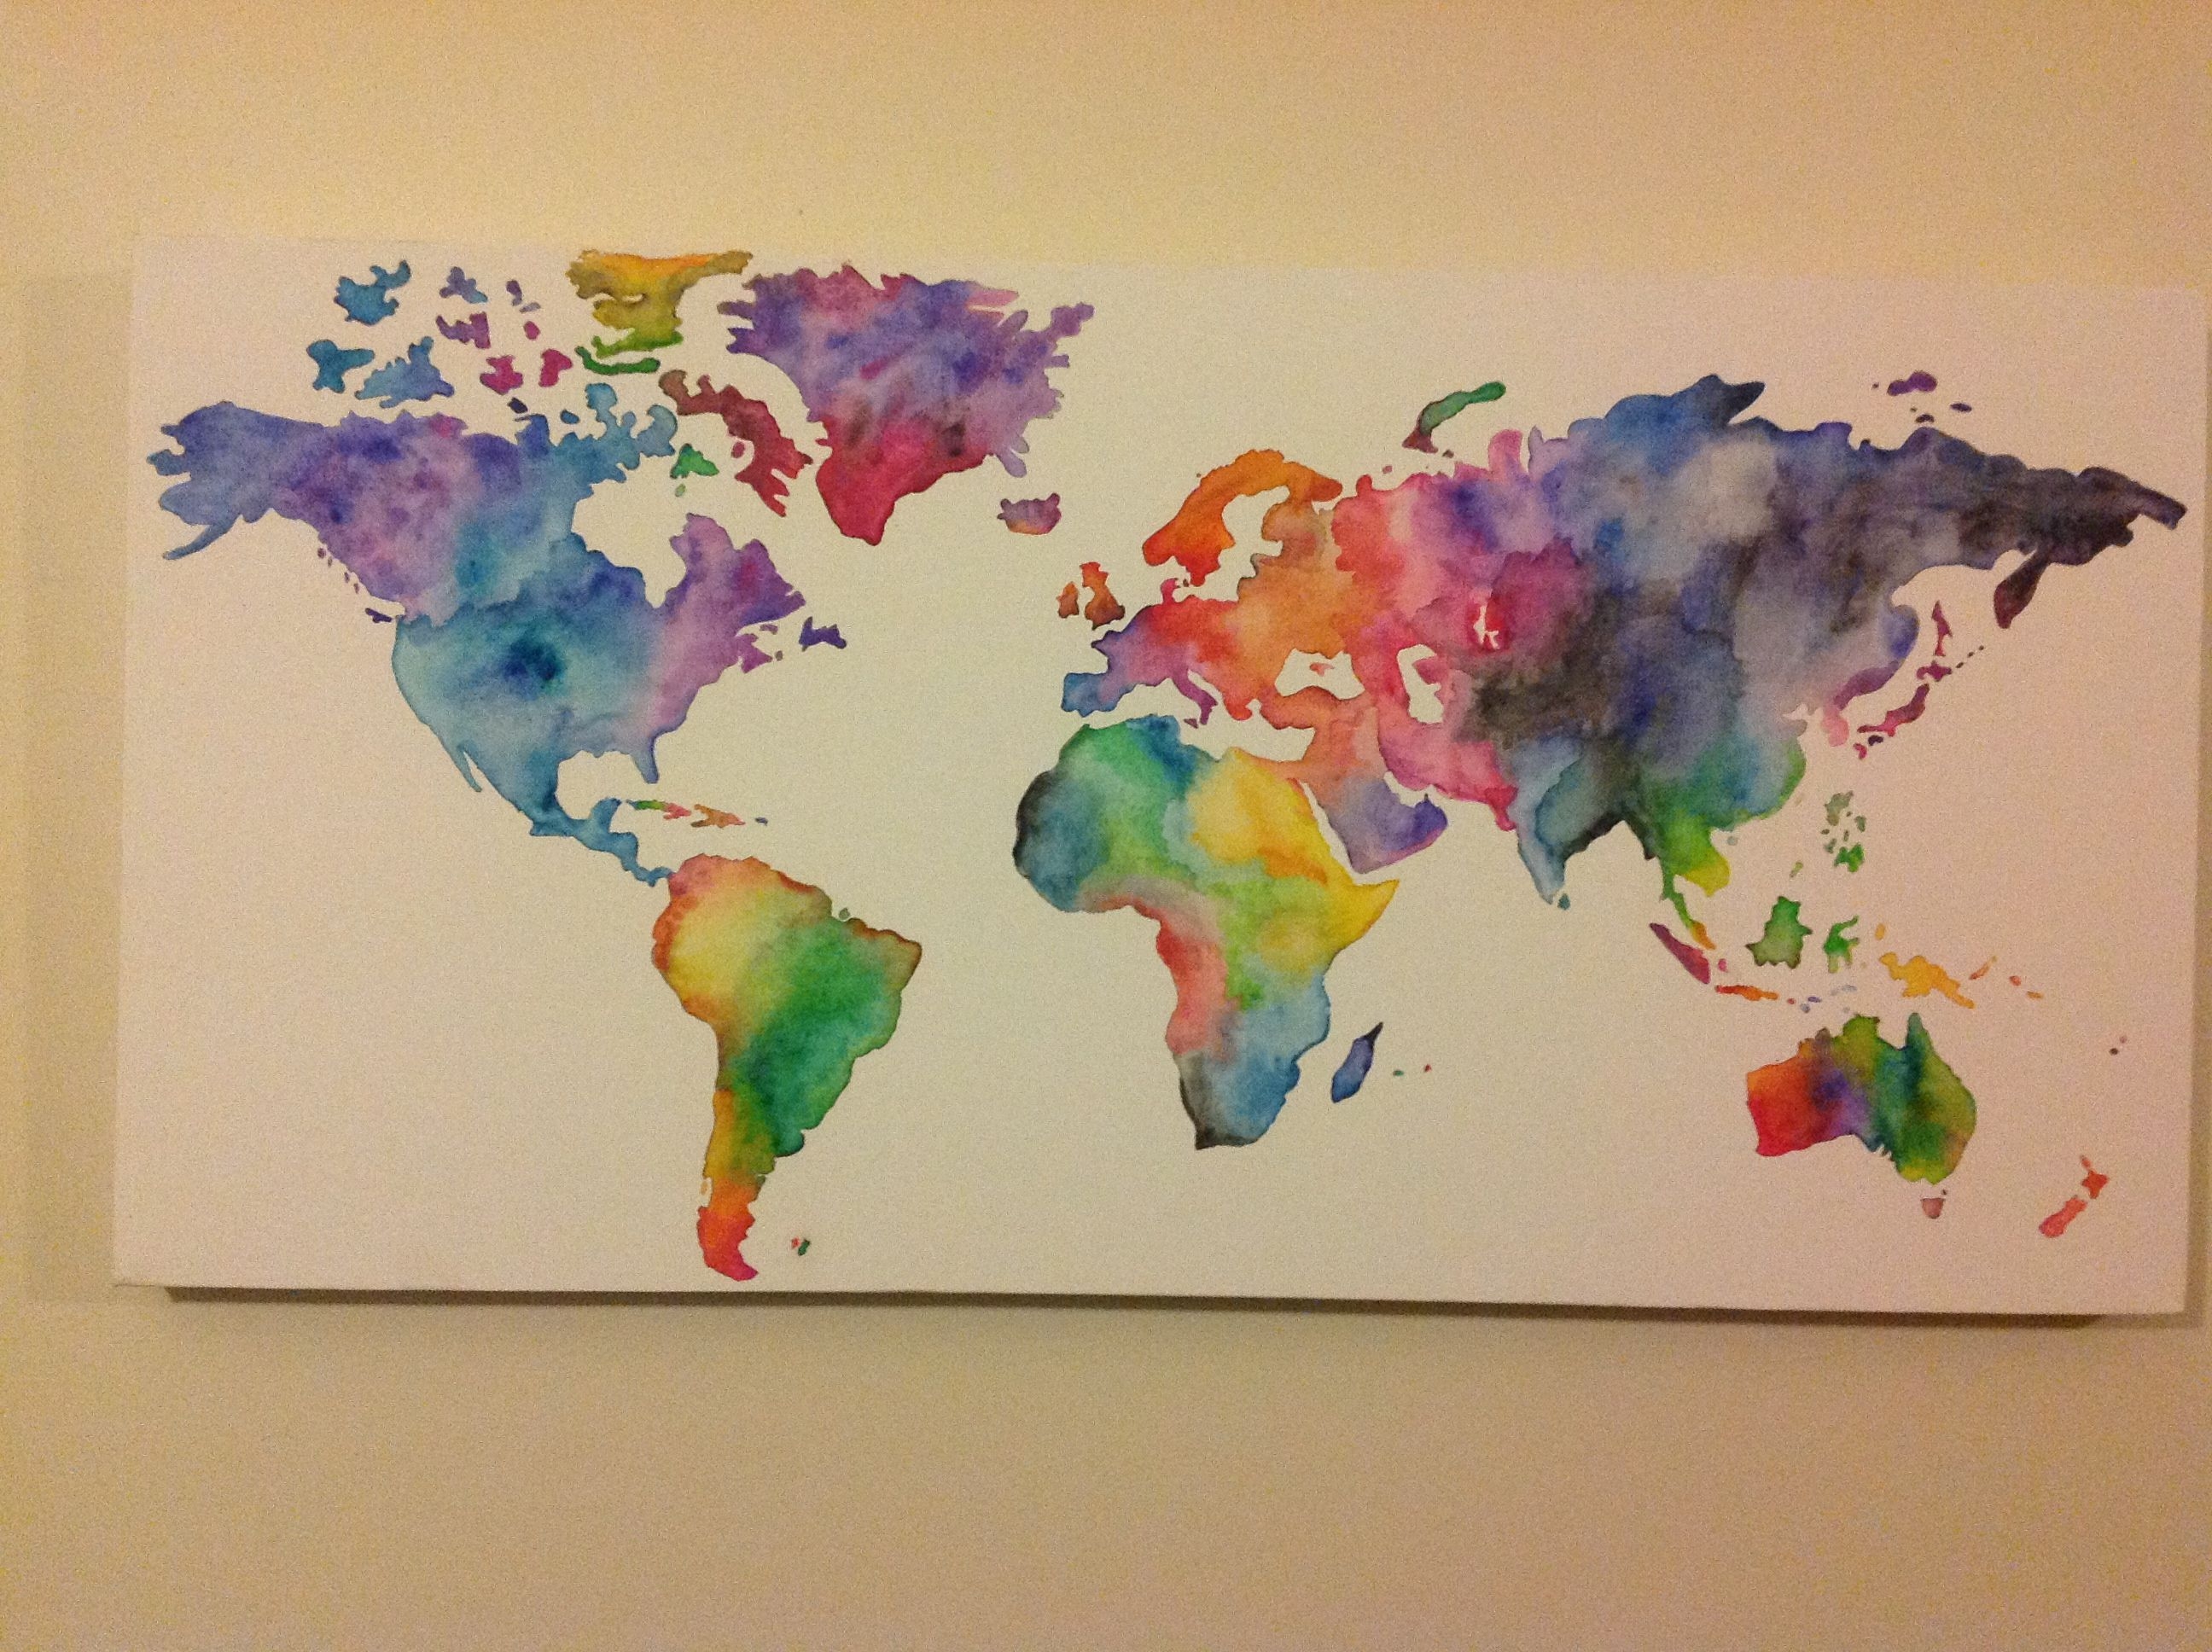 Homemade watercolor world map! Sketch and paint! | DIY | Pinterest ...